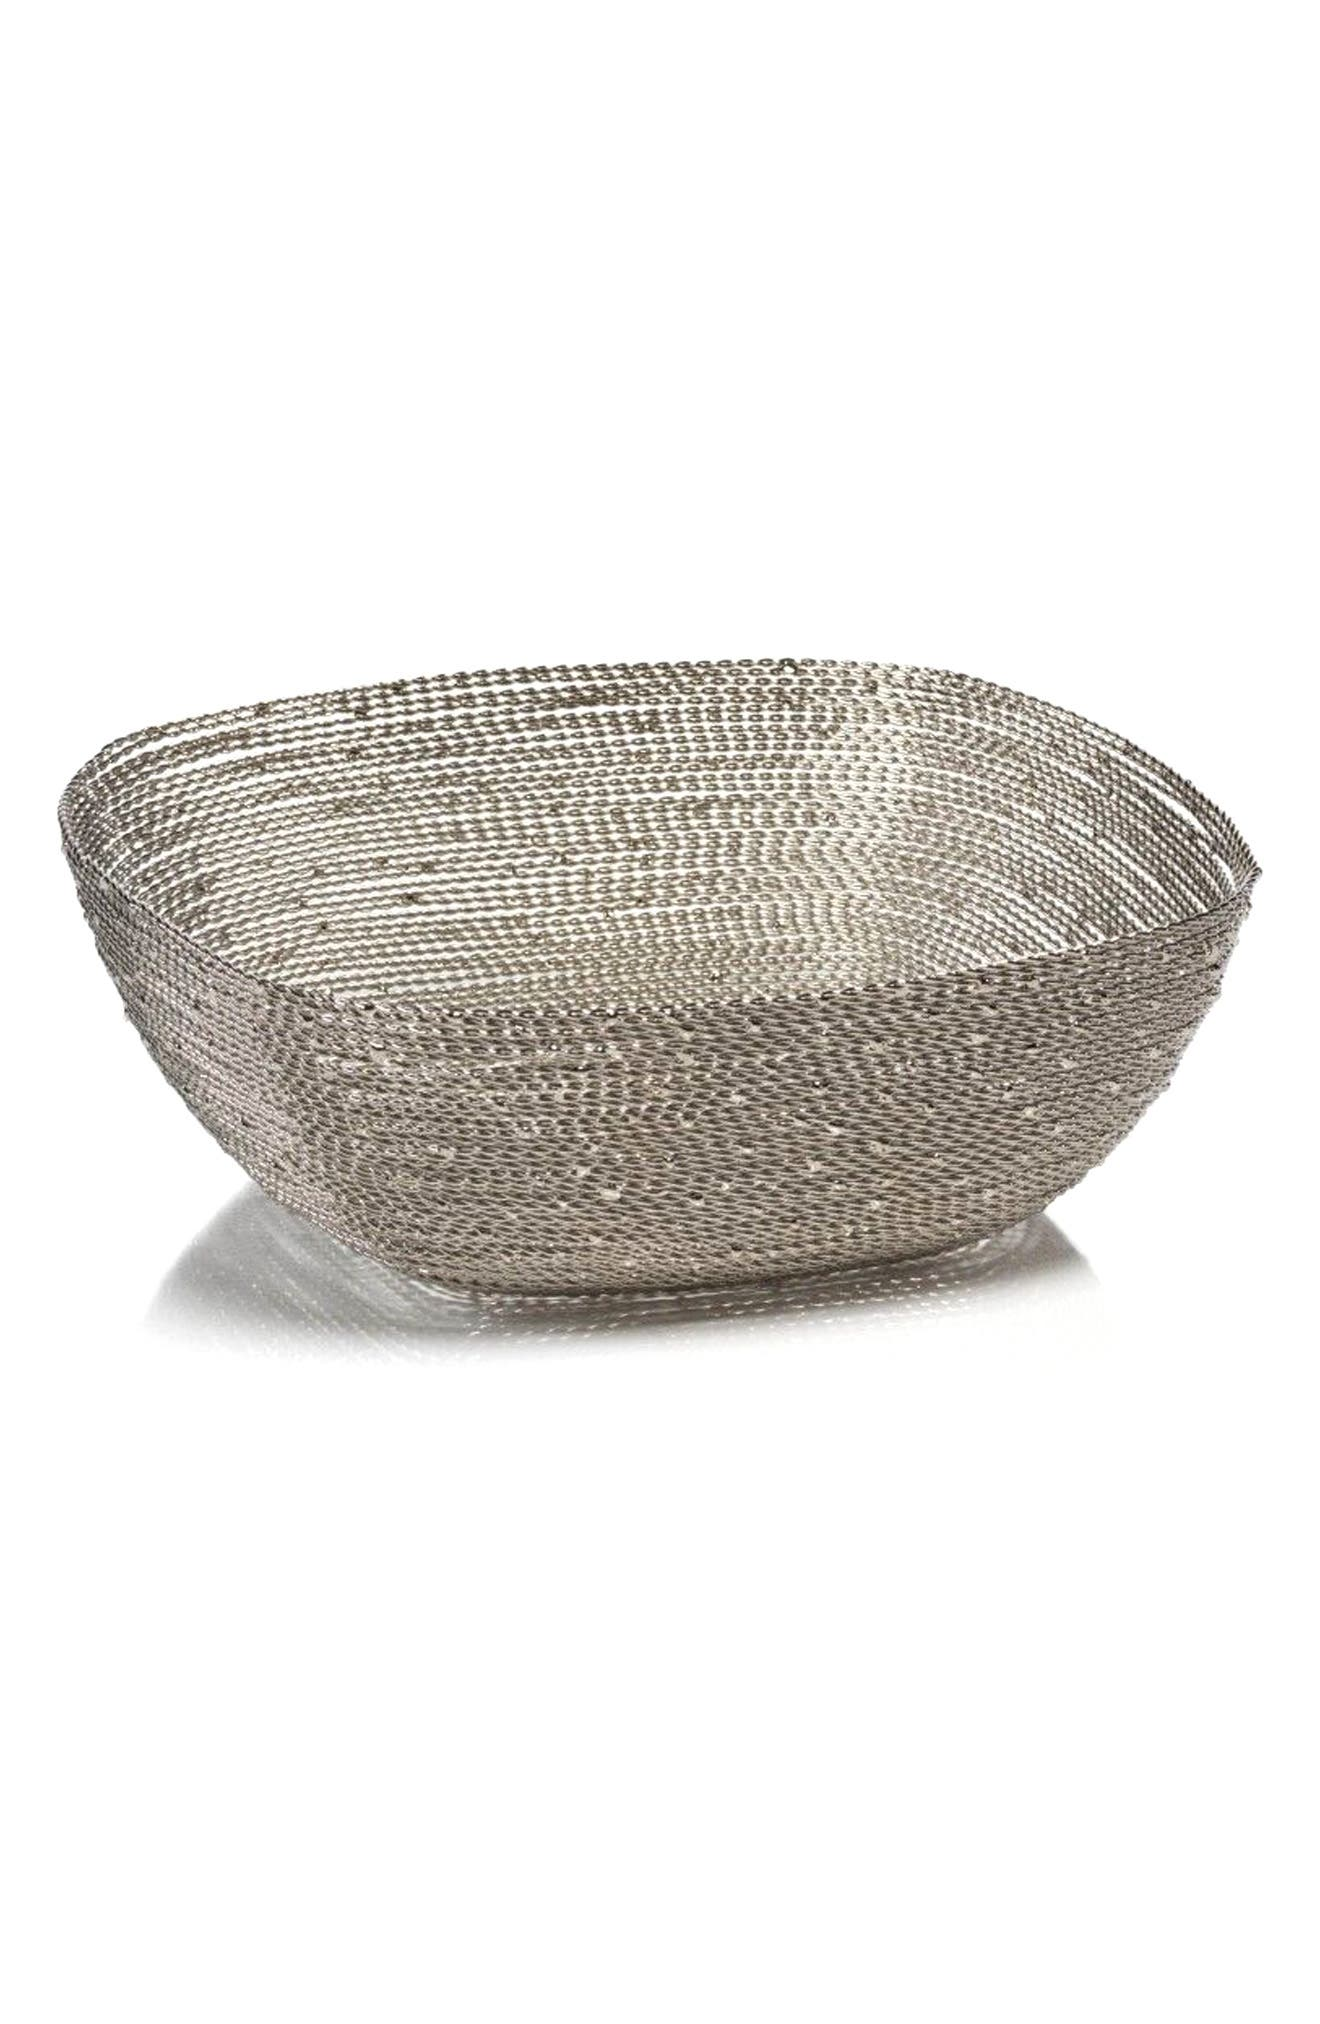 ZODAX,                             Zulu Small Square Woven Wire Basket,                             Main thumbnail 1, color,                             040